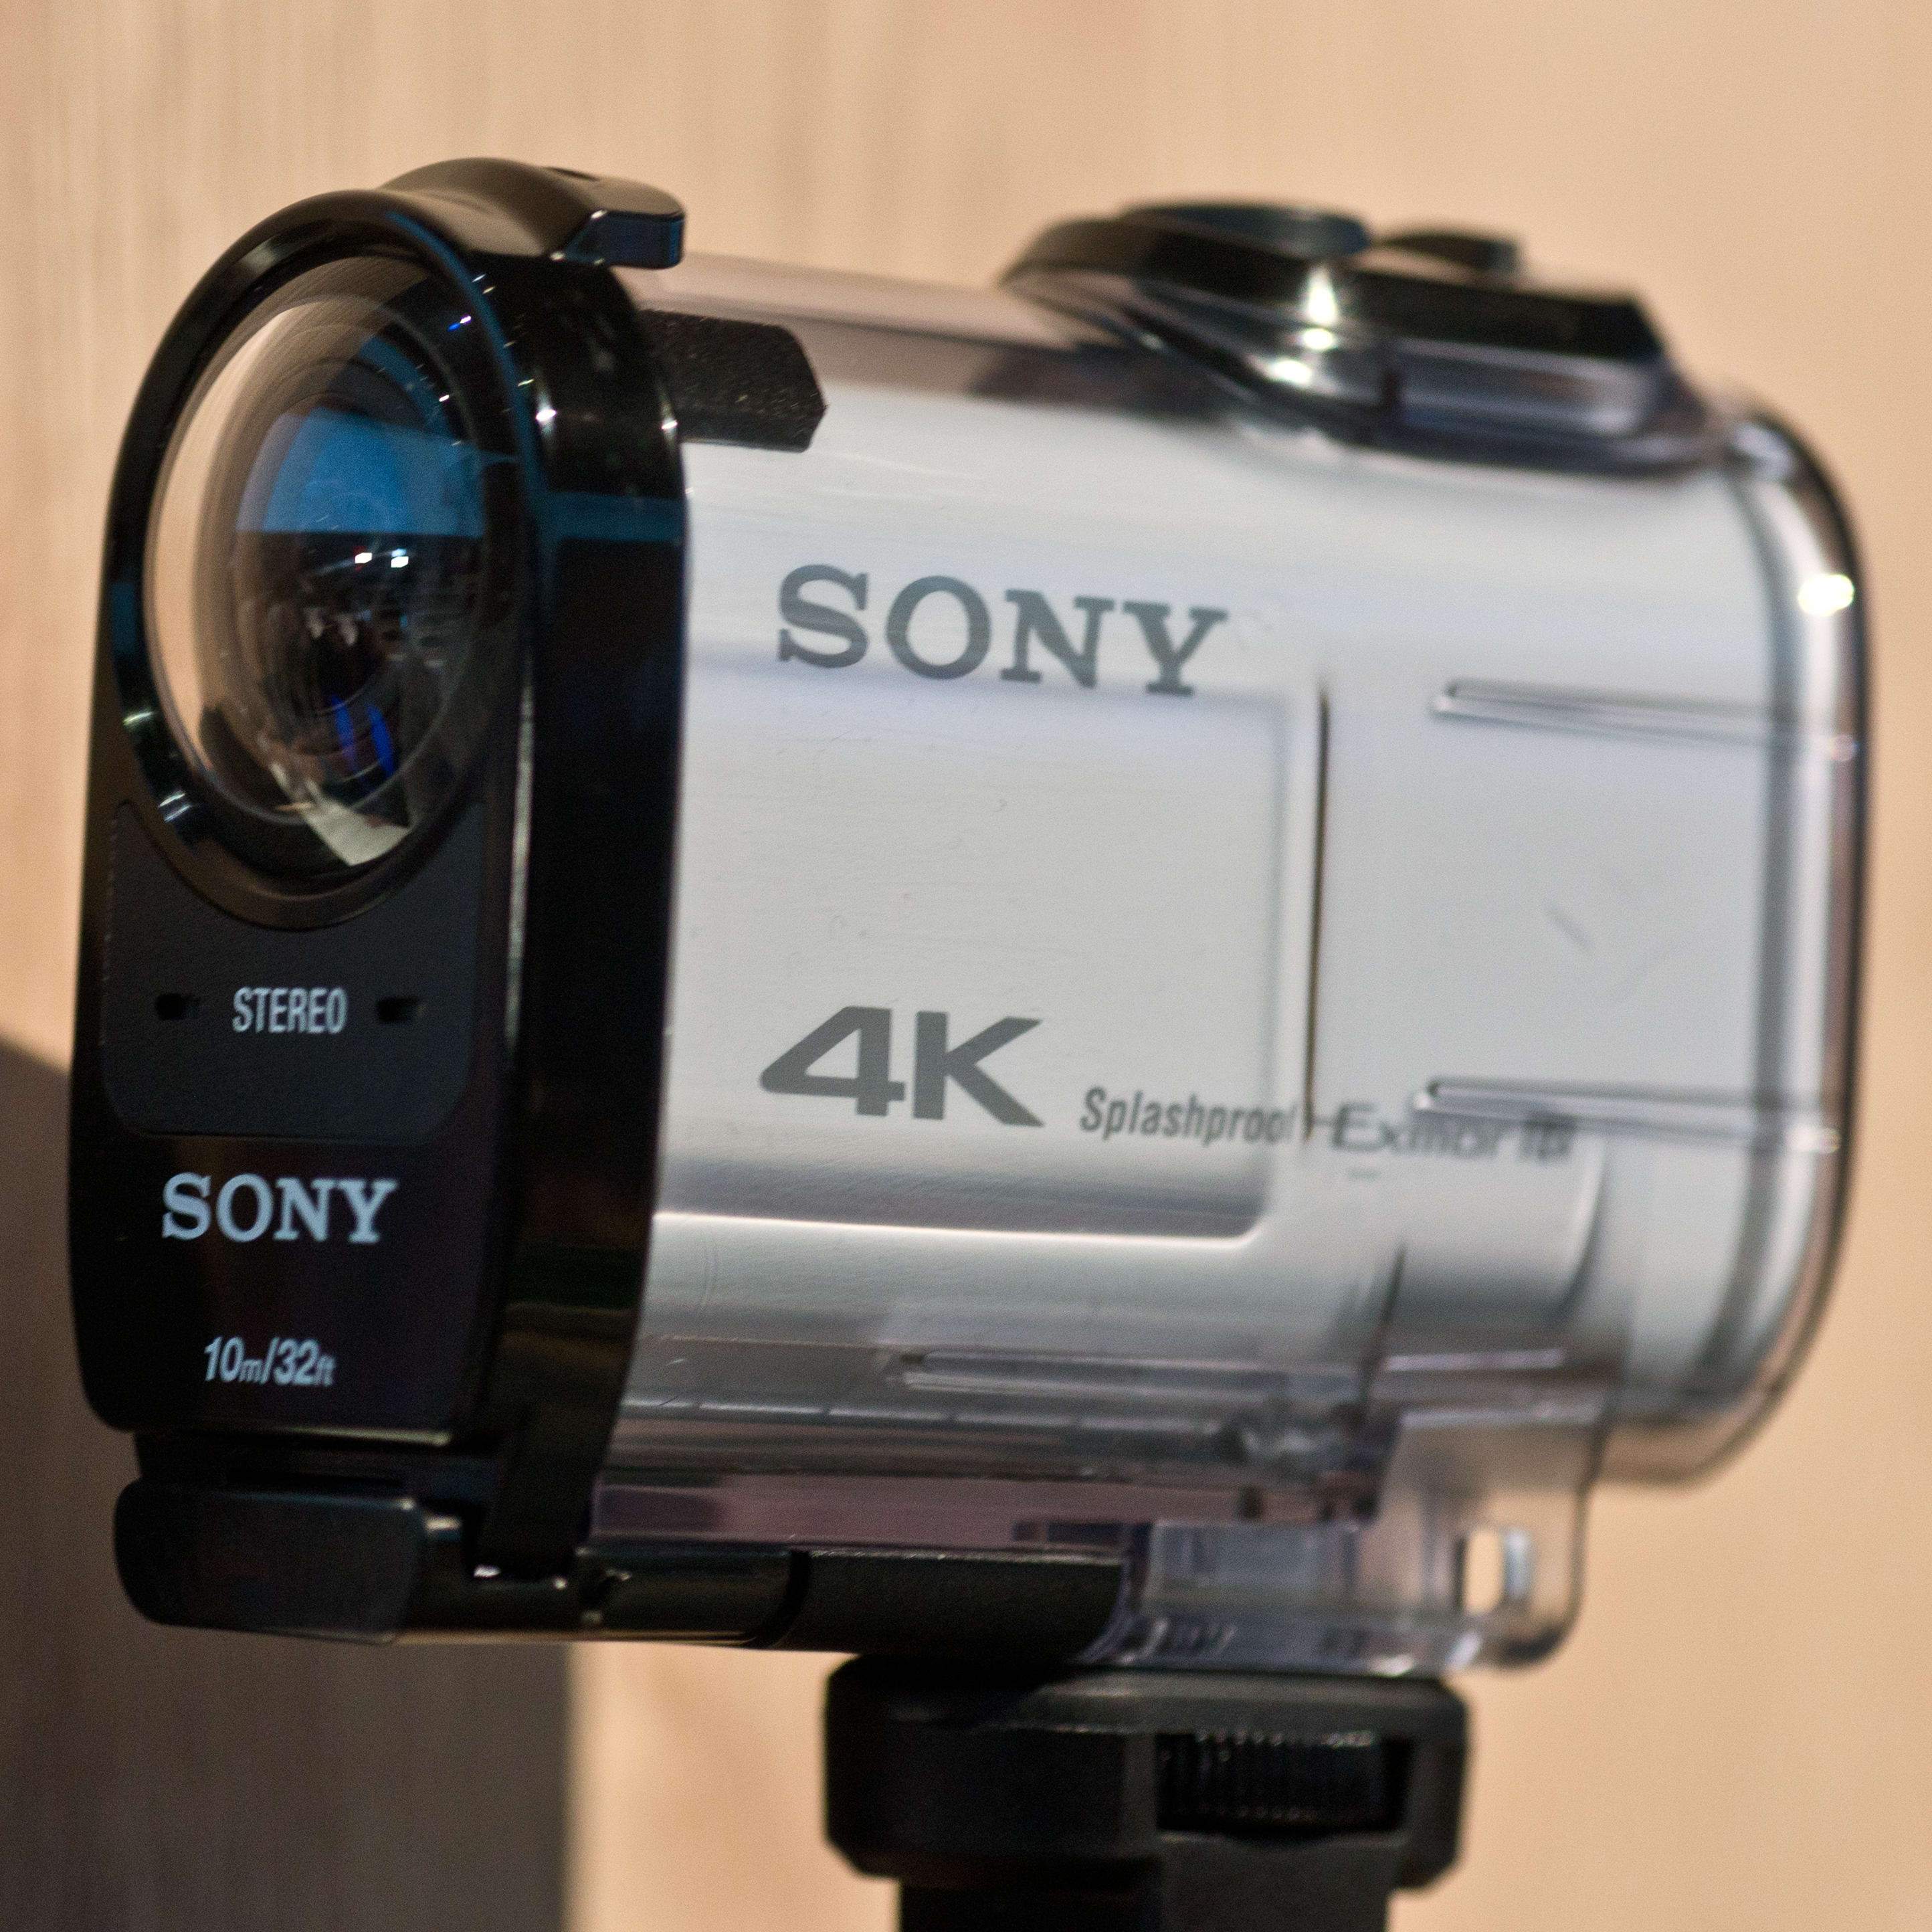 A photograph of the Sony Action Cam FDR-X1000V's additional waterproof casing.